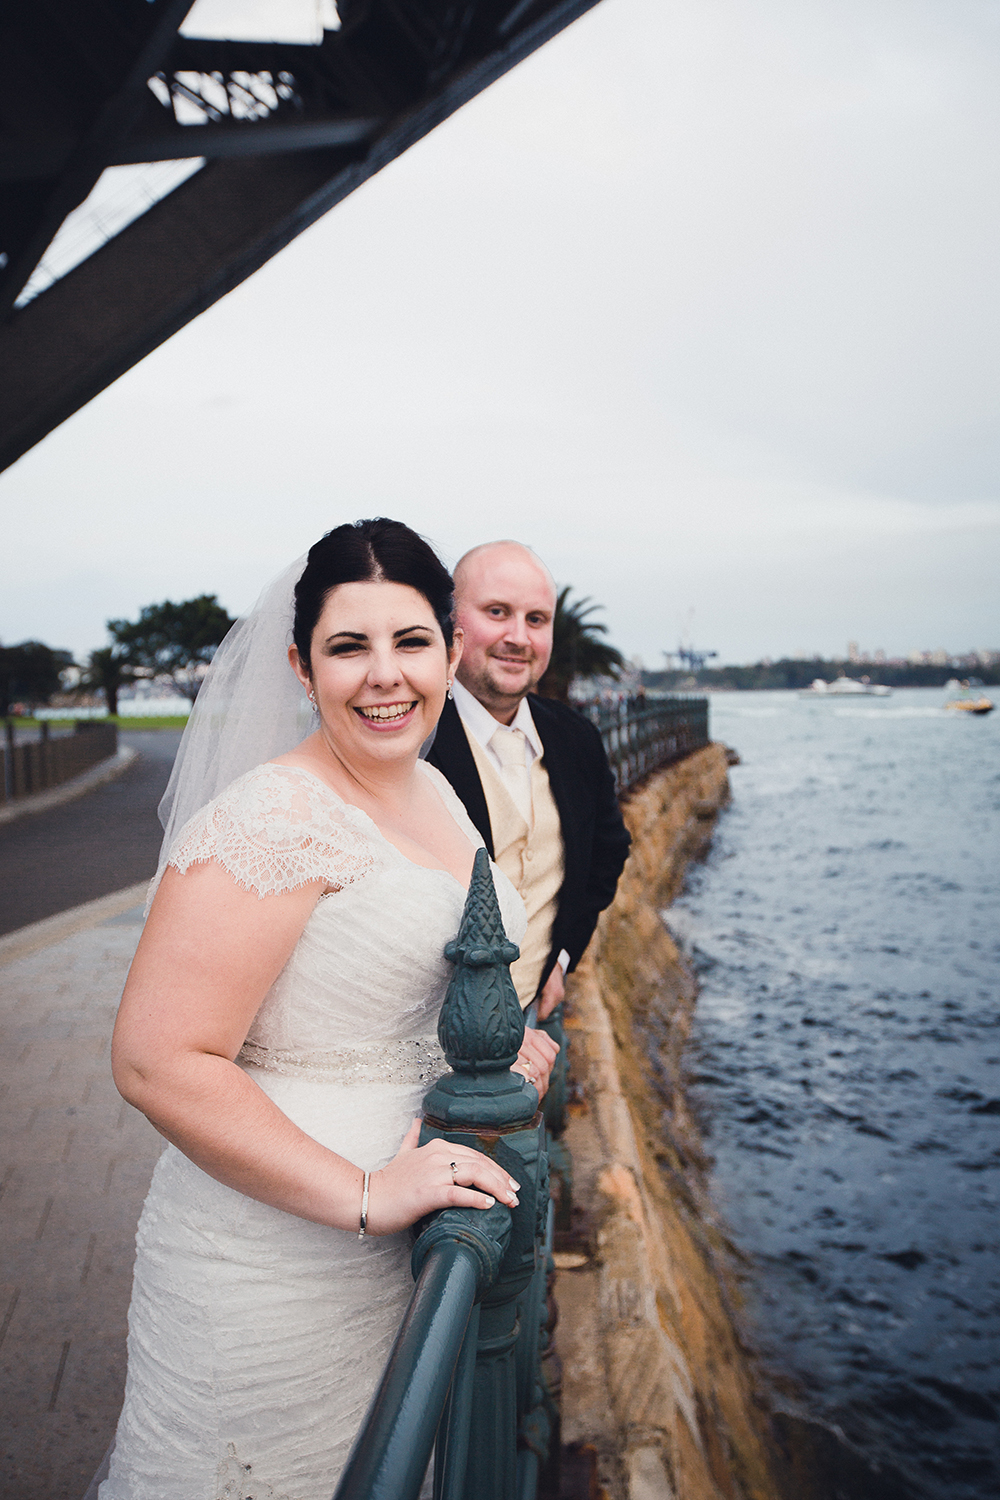 Renee & Chris 10 May 2014-169.jpg